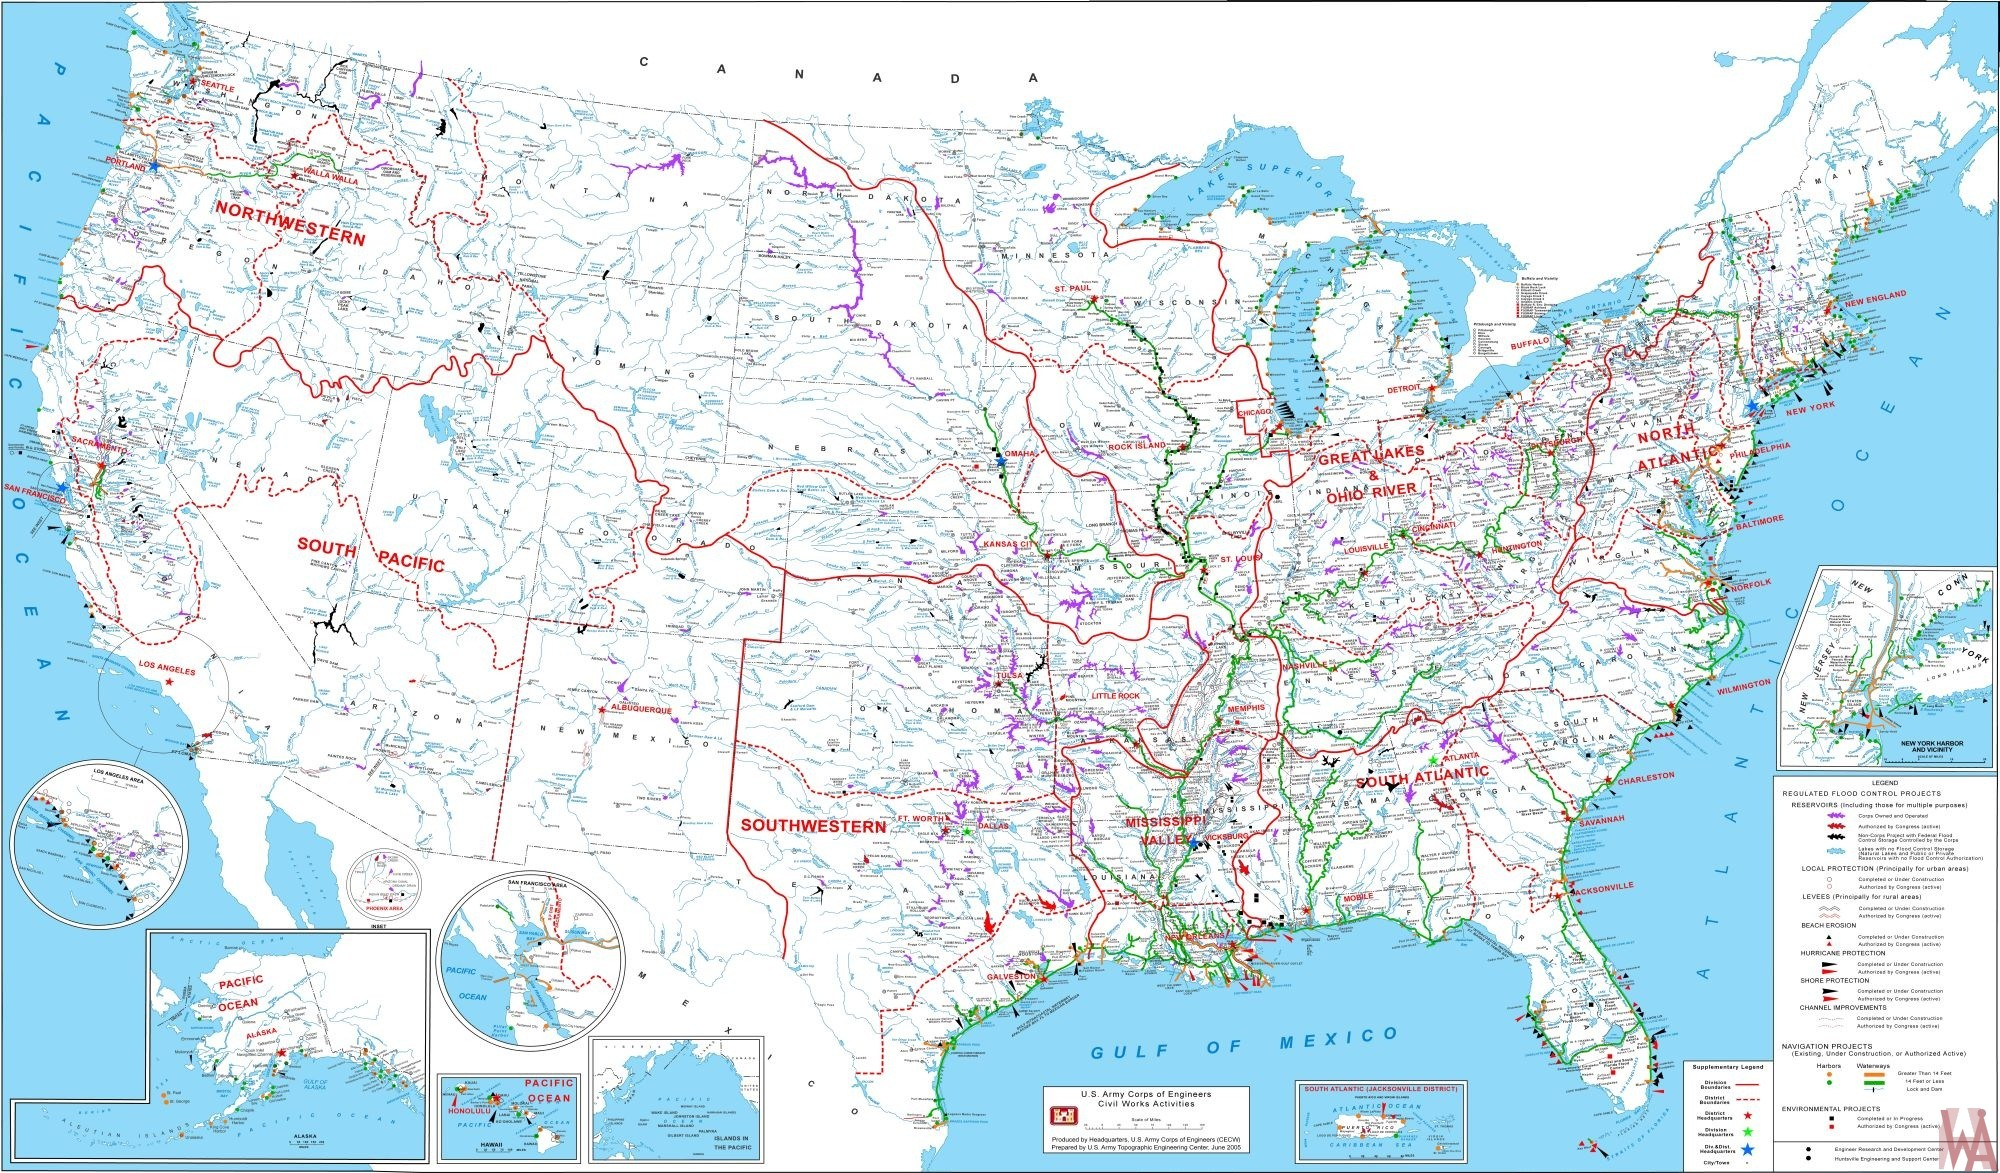 USACE Project map